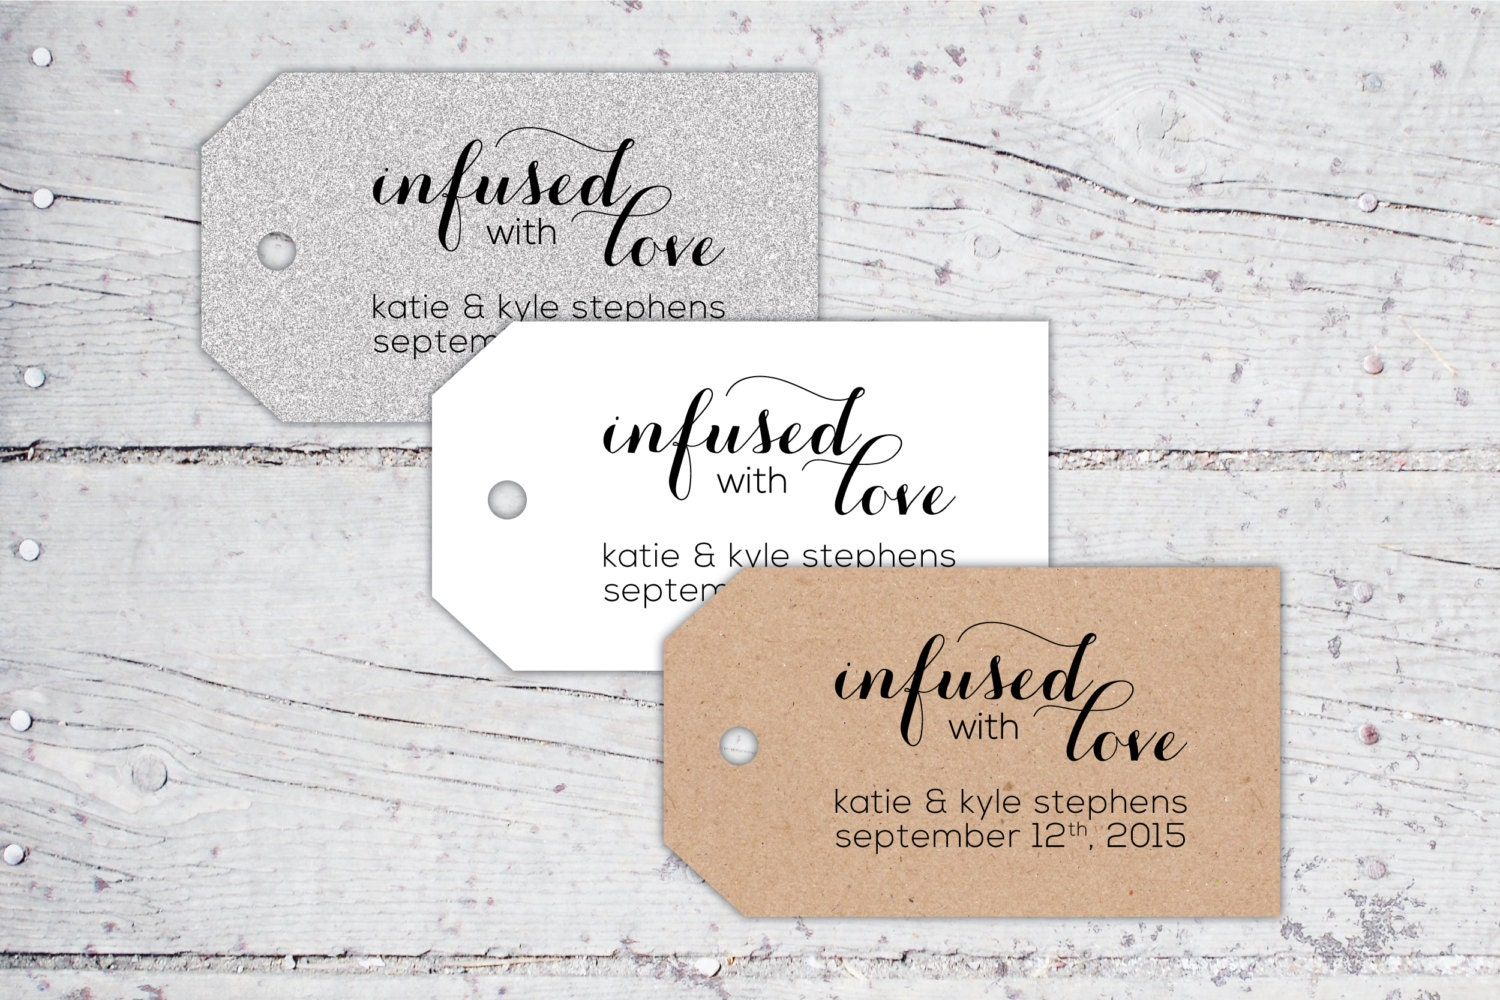 Infused With Love Olive Oil Wedding Favor Tags 3 x 1.7